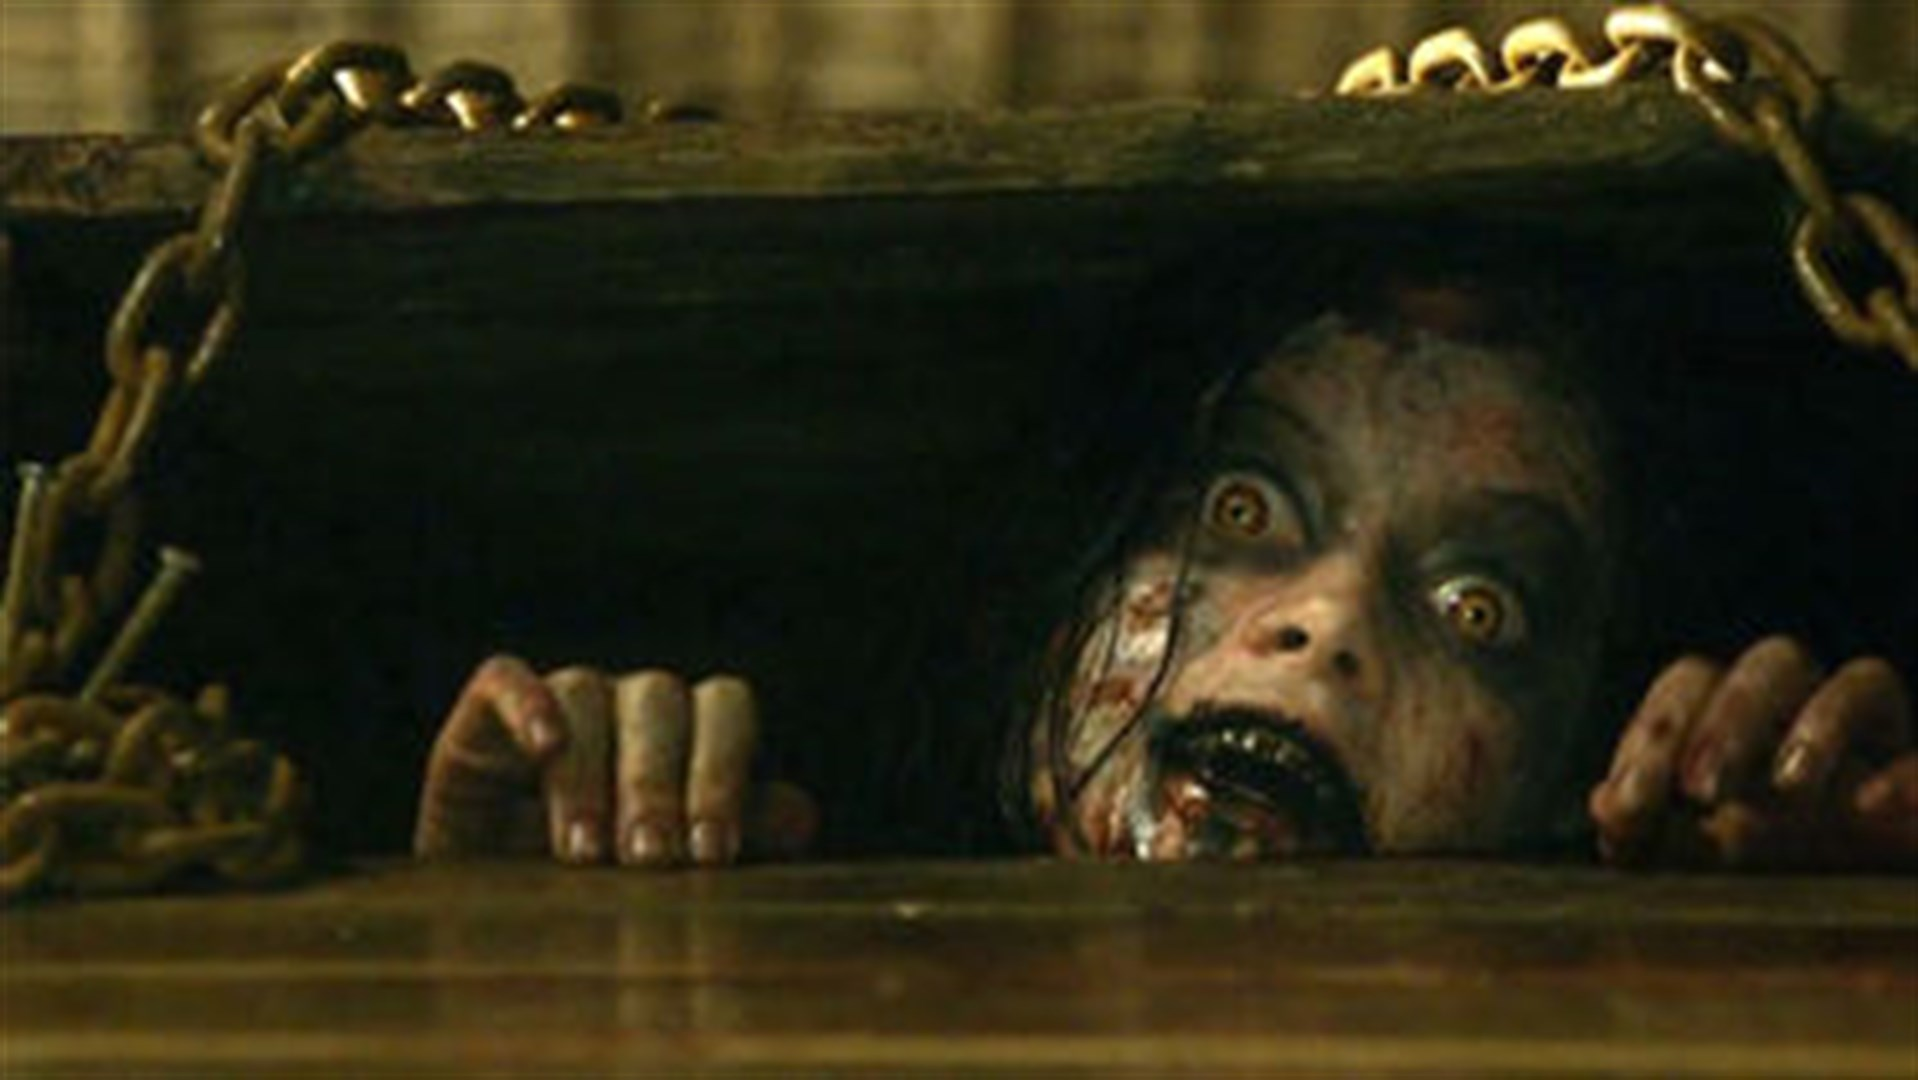 evil dead 2013 hollywood movie download in hindi